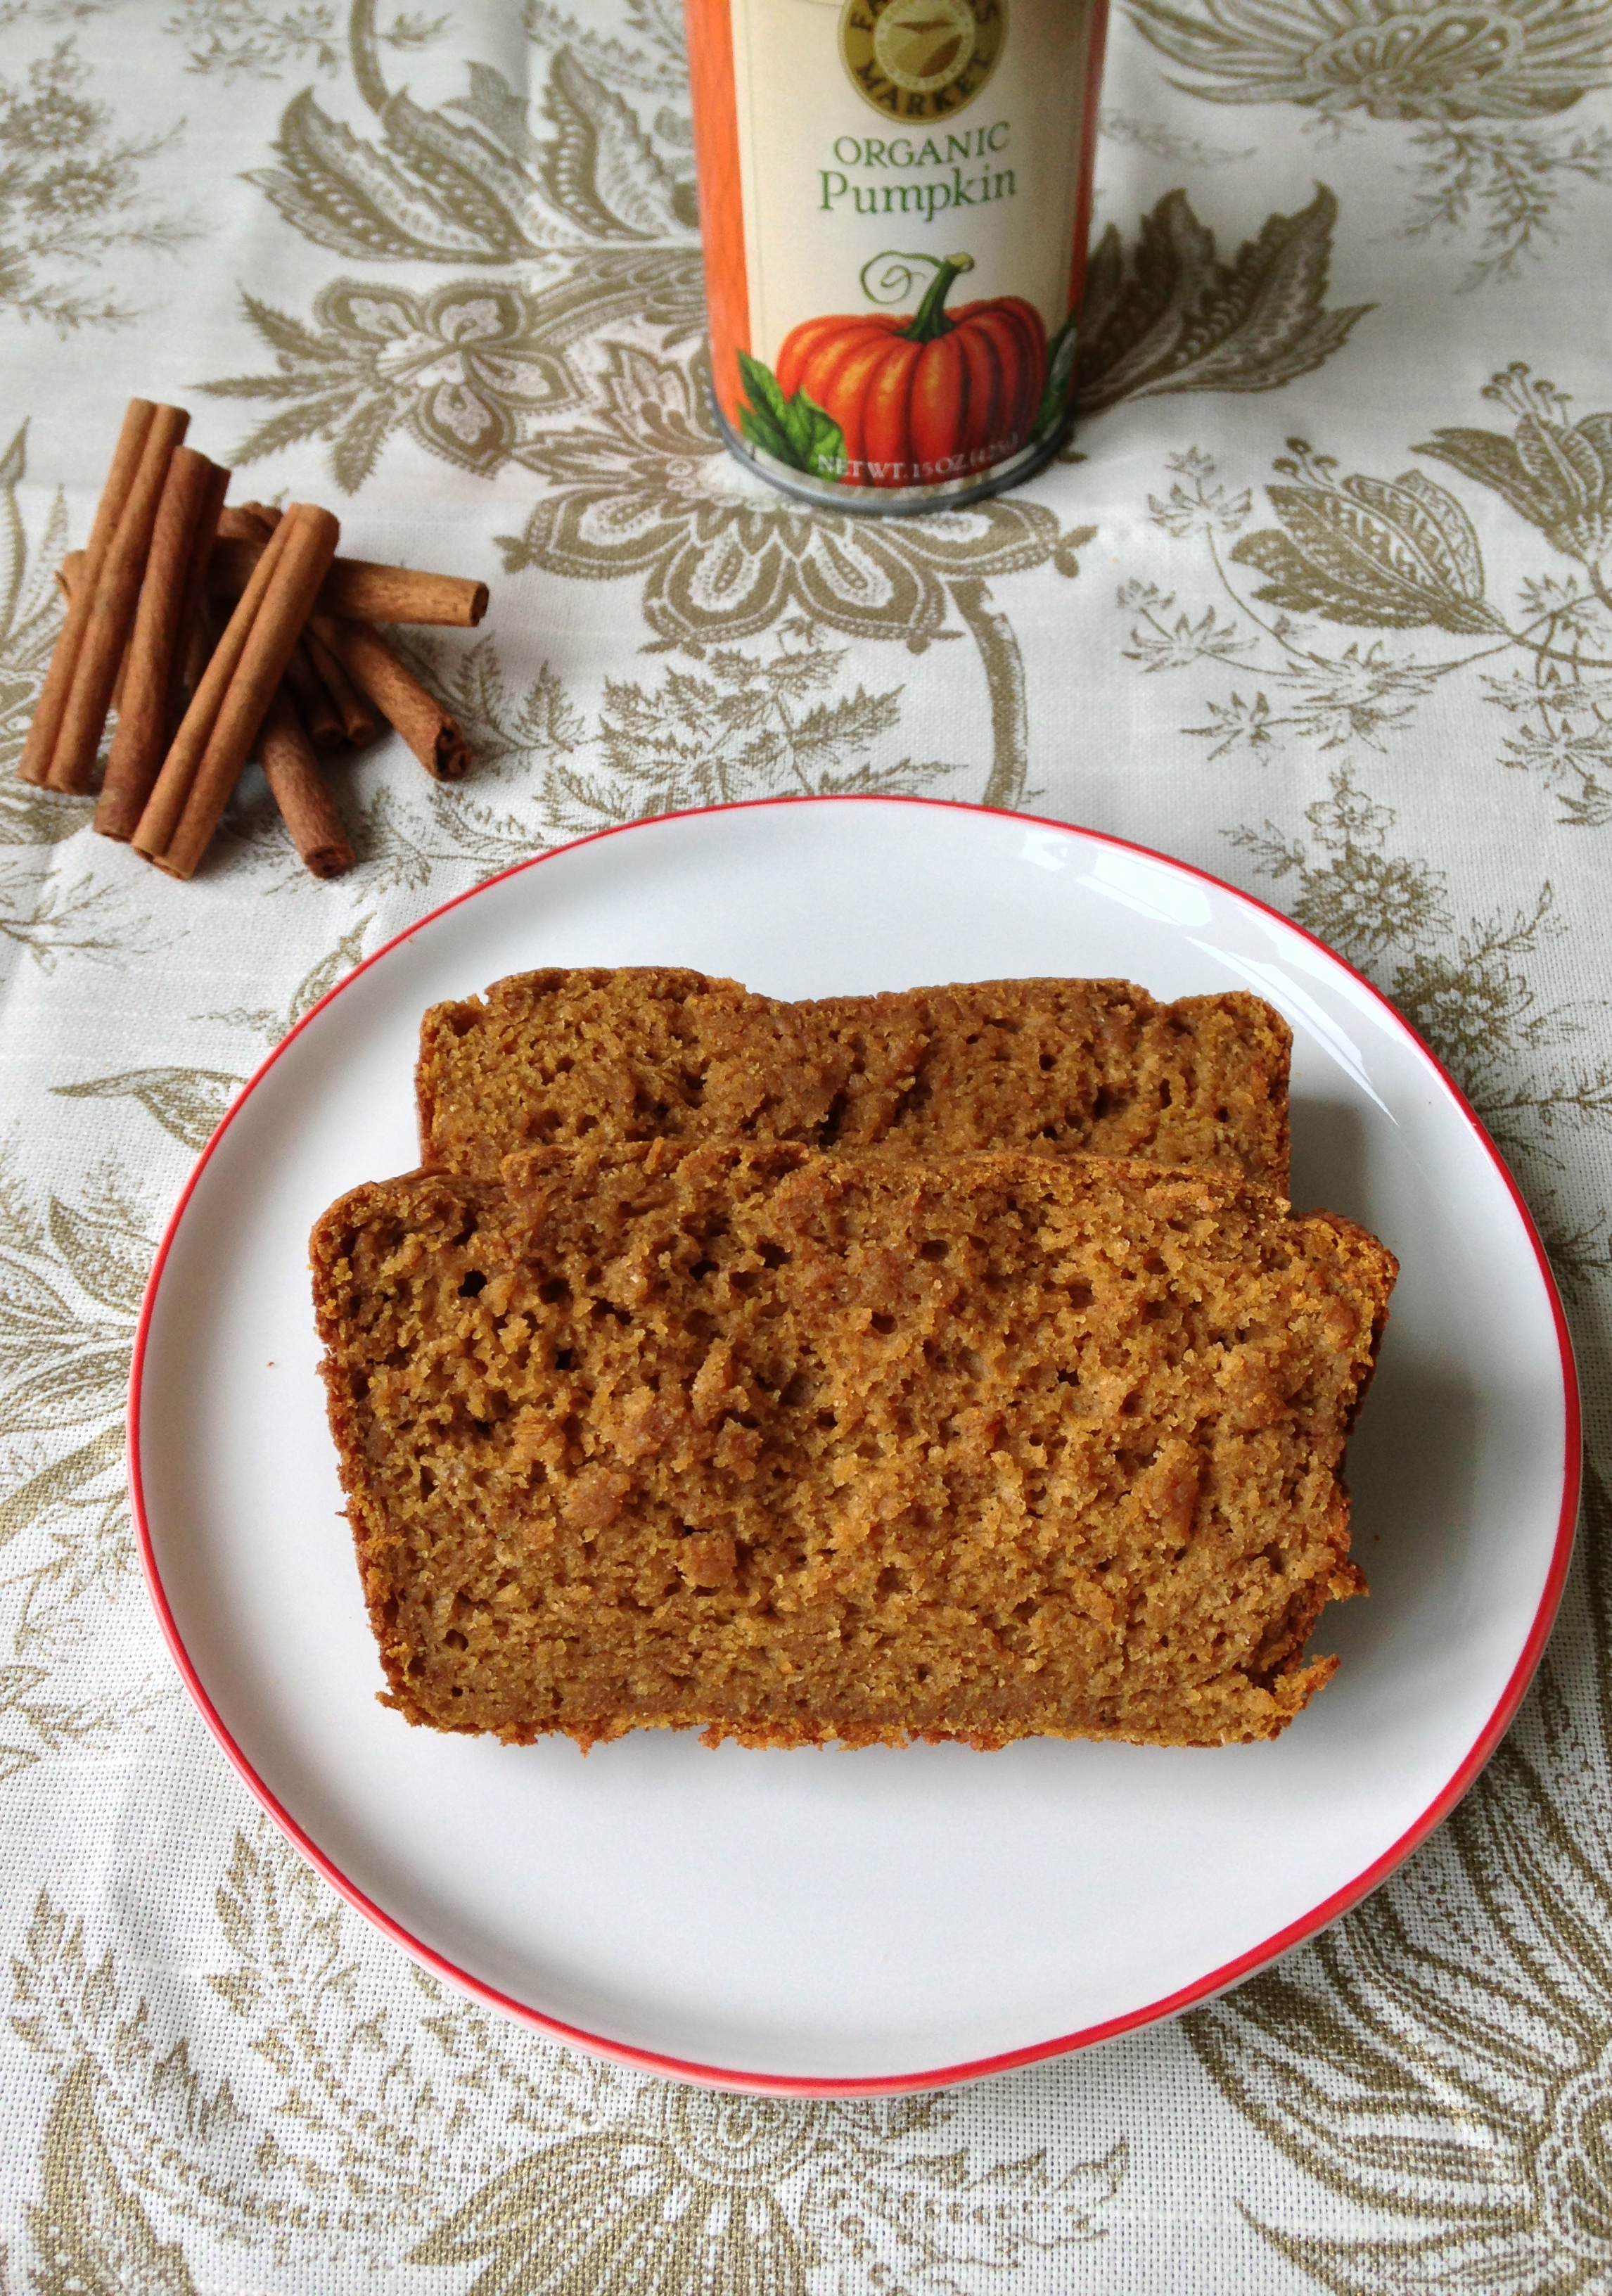 Pumpkin Yogurt Bread - skinny, healthy, and delicious! | ChezCateyLou.com